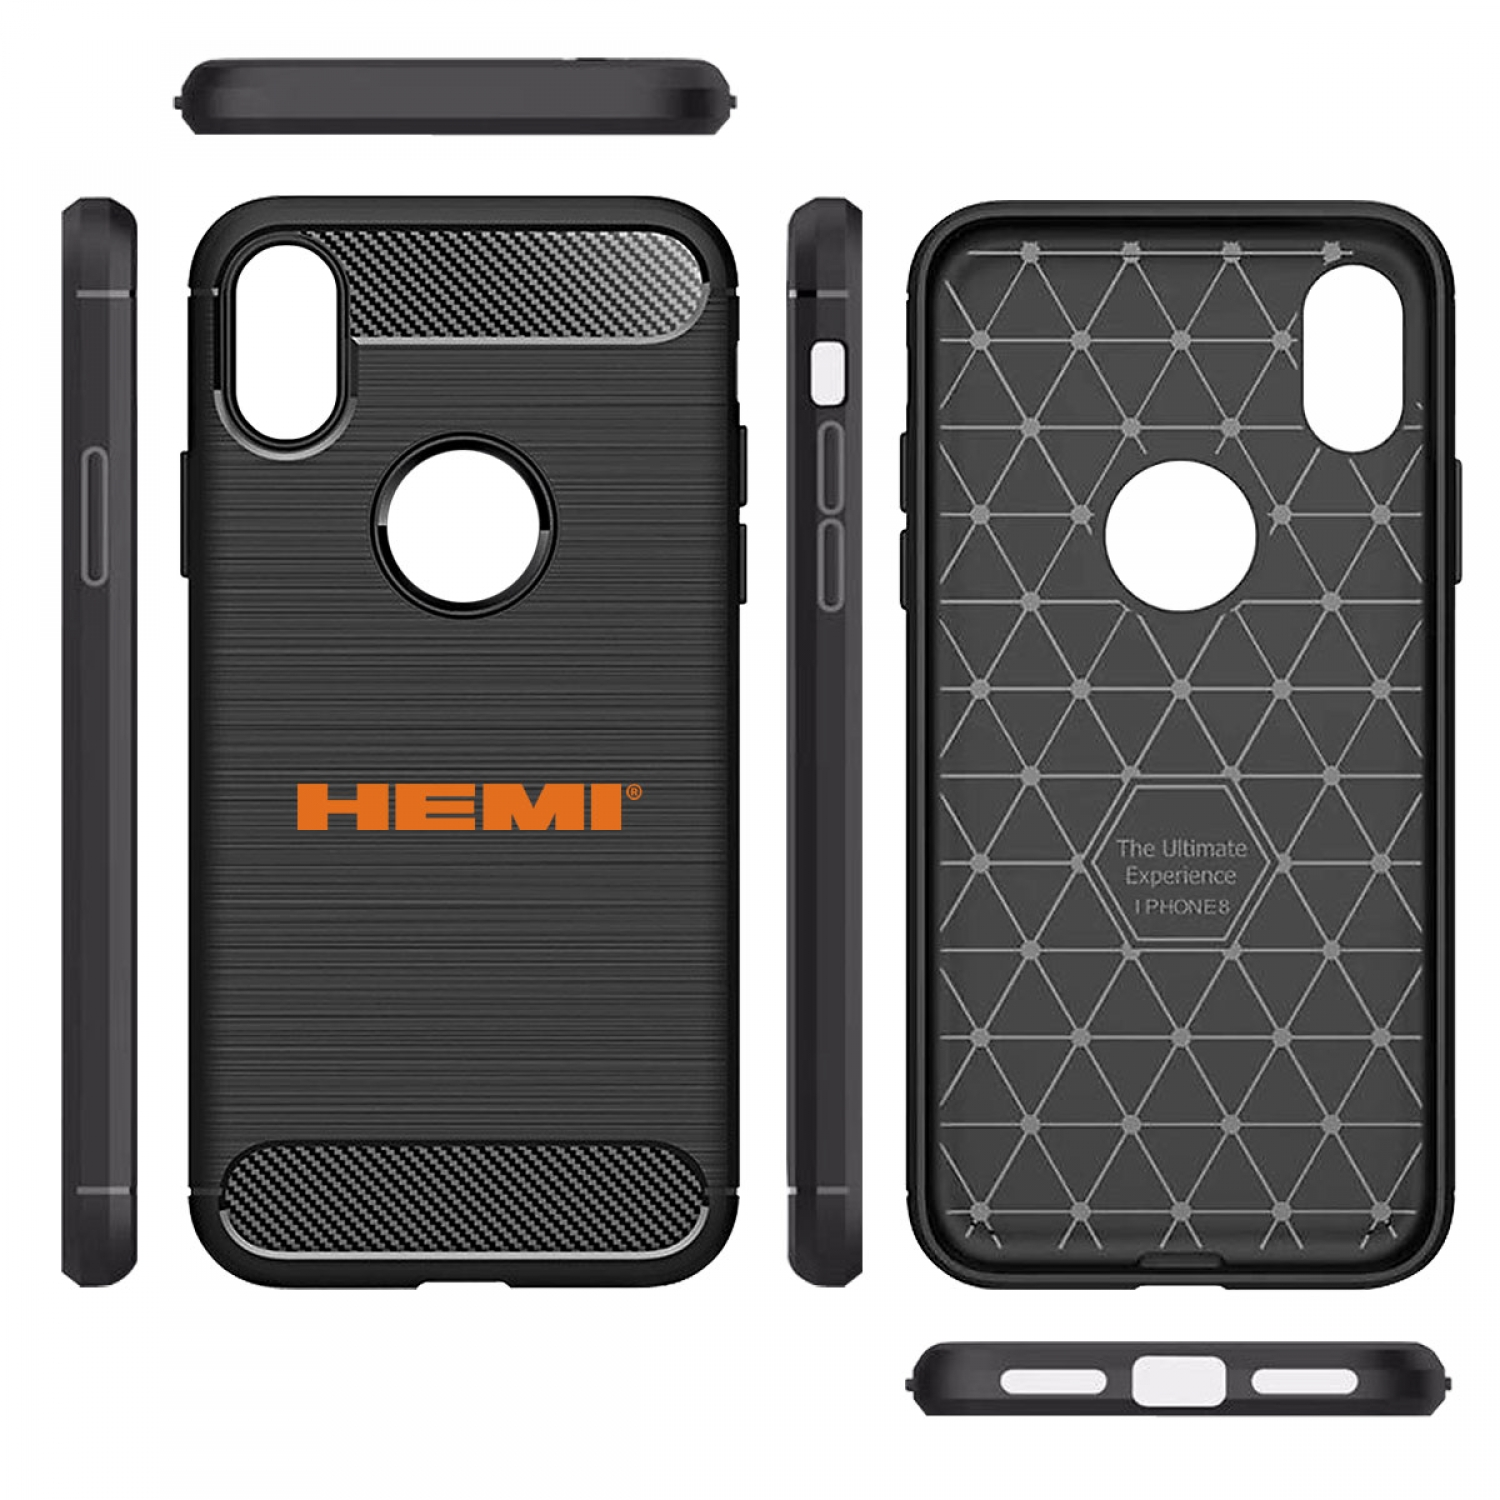 HEMI Logo iPhone X TPU Shockproof Black Carbon Fiber Textures Stripes Cell Phone Case